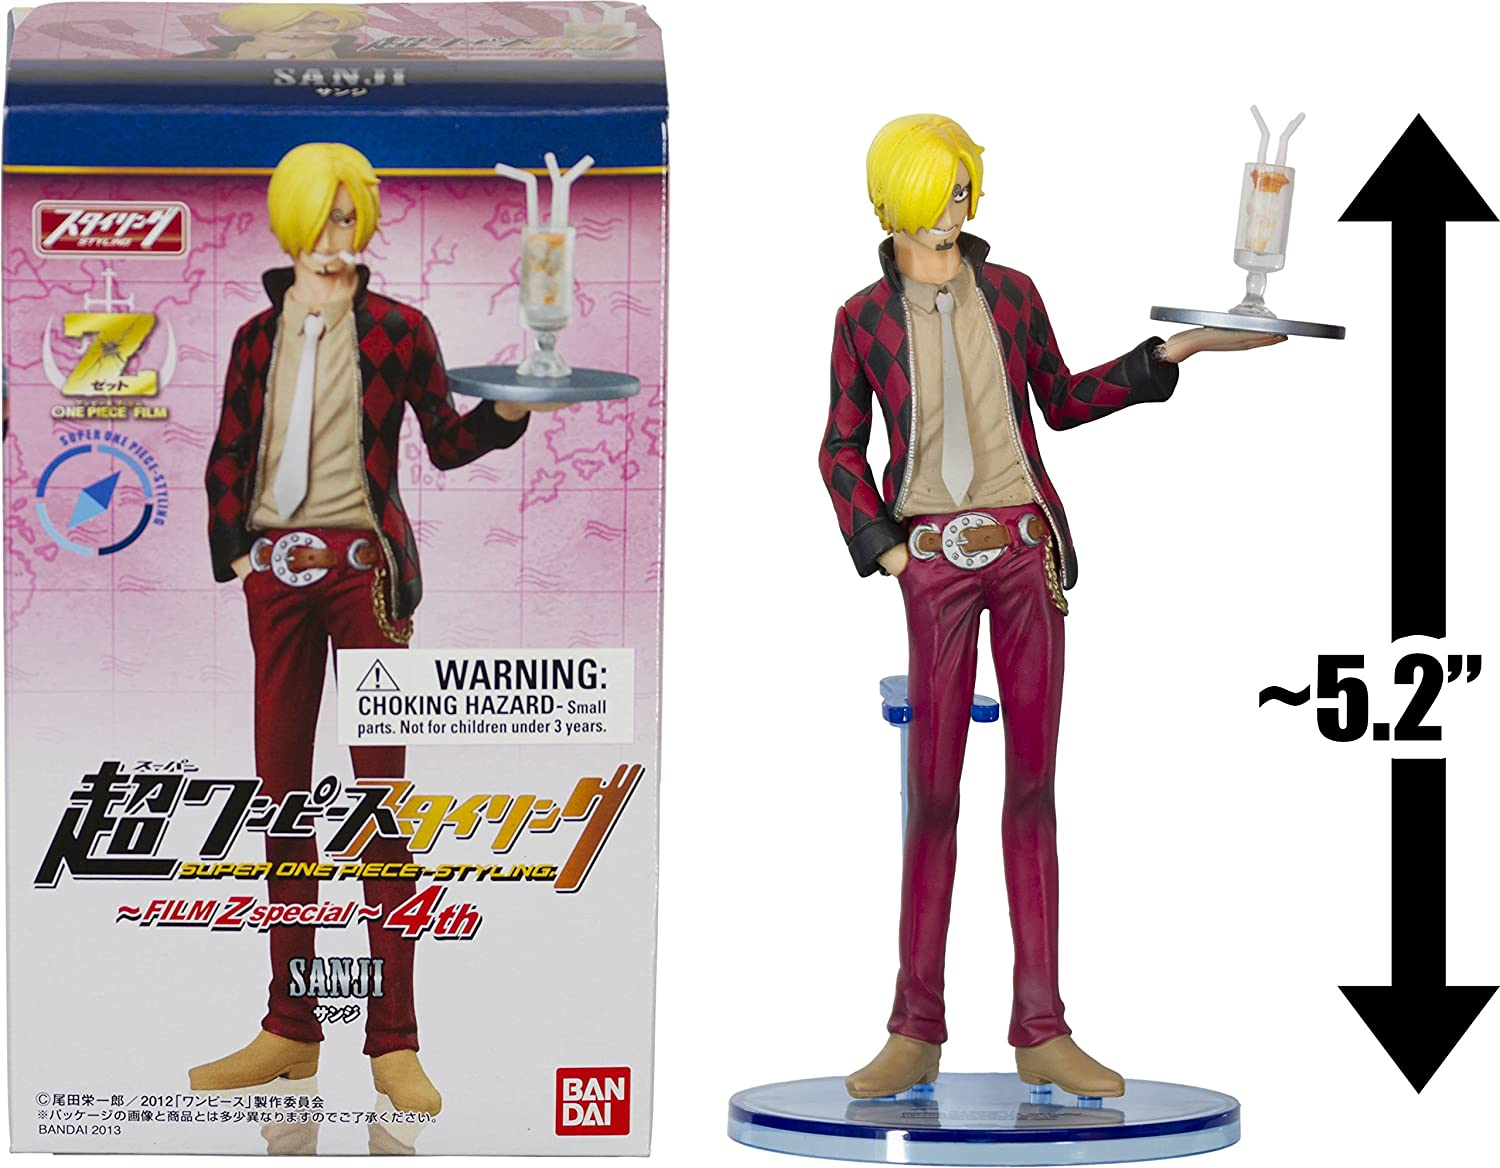 Sanji 5.2 Figure  Super One Piece Styling Figure  Film Z Special Series  4 (Japanese Import)